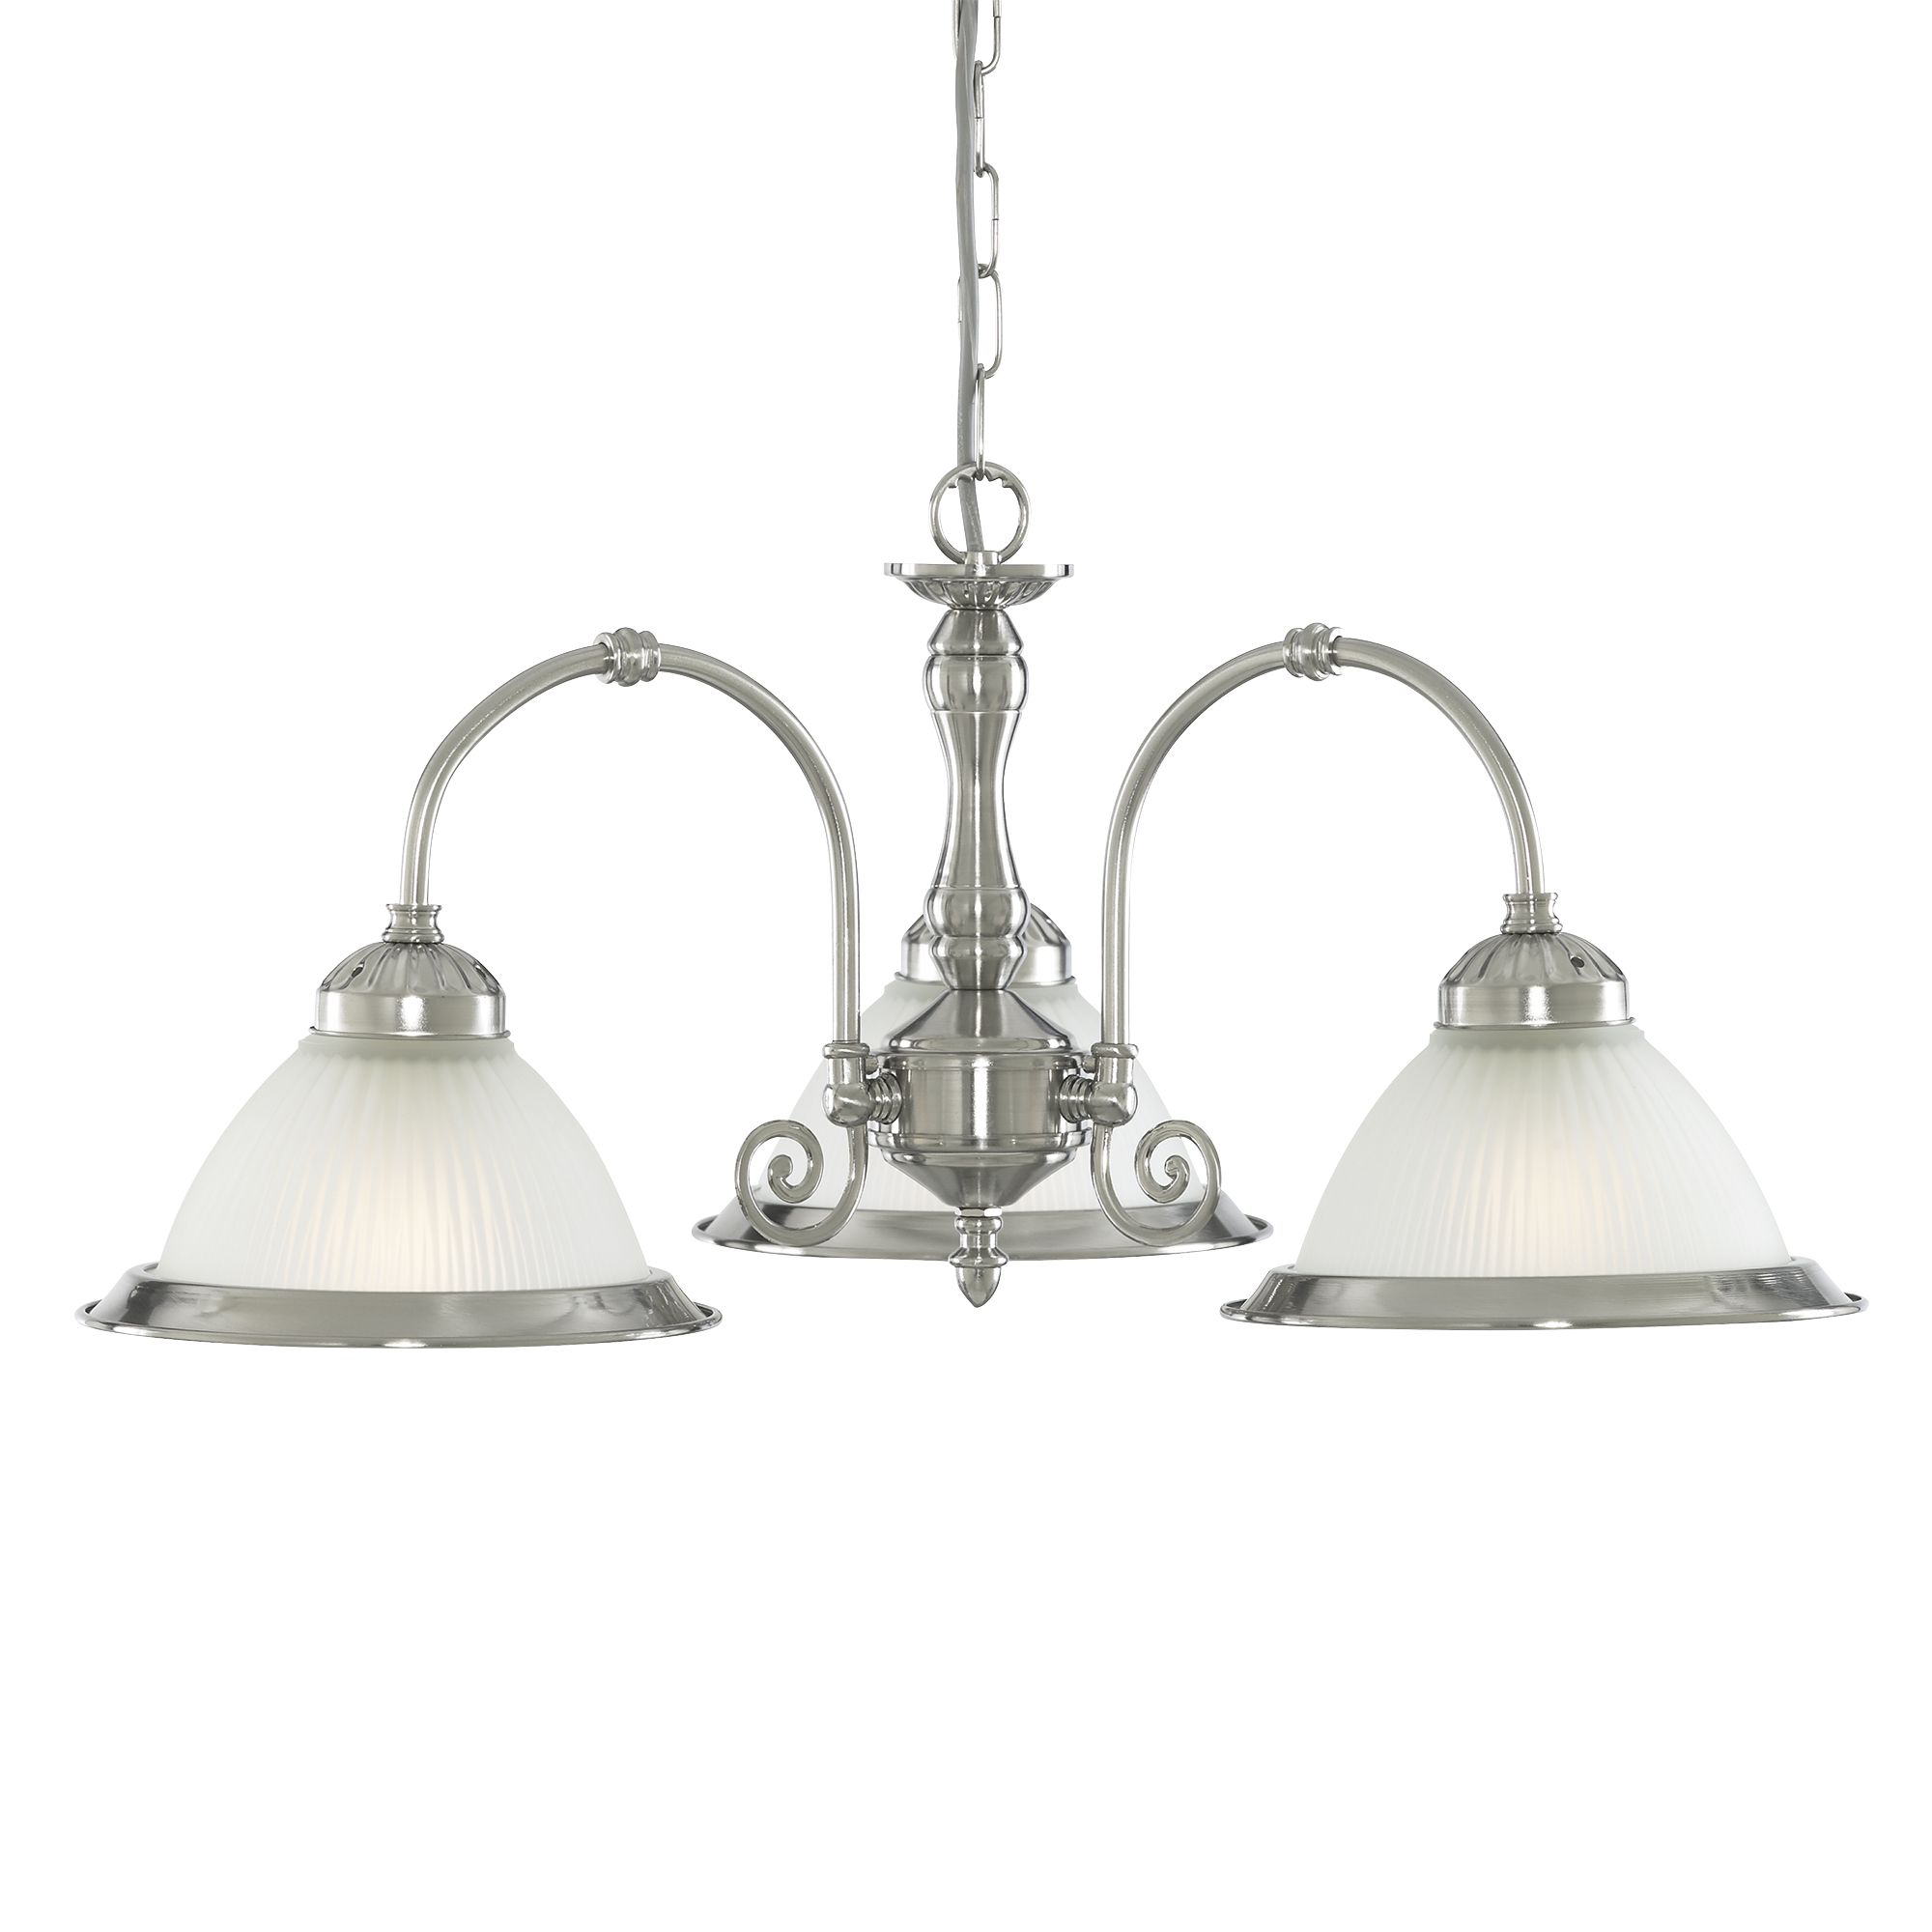 American Diner Satin Silver 3 Light Fitting With Acid Ribbed Glass